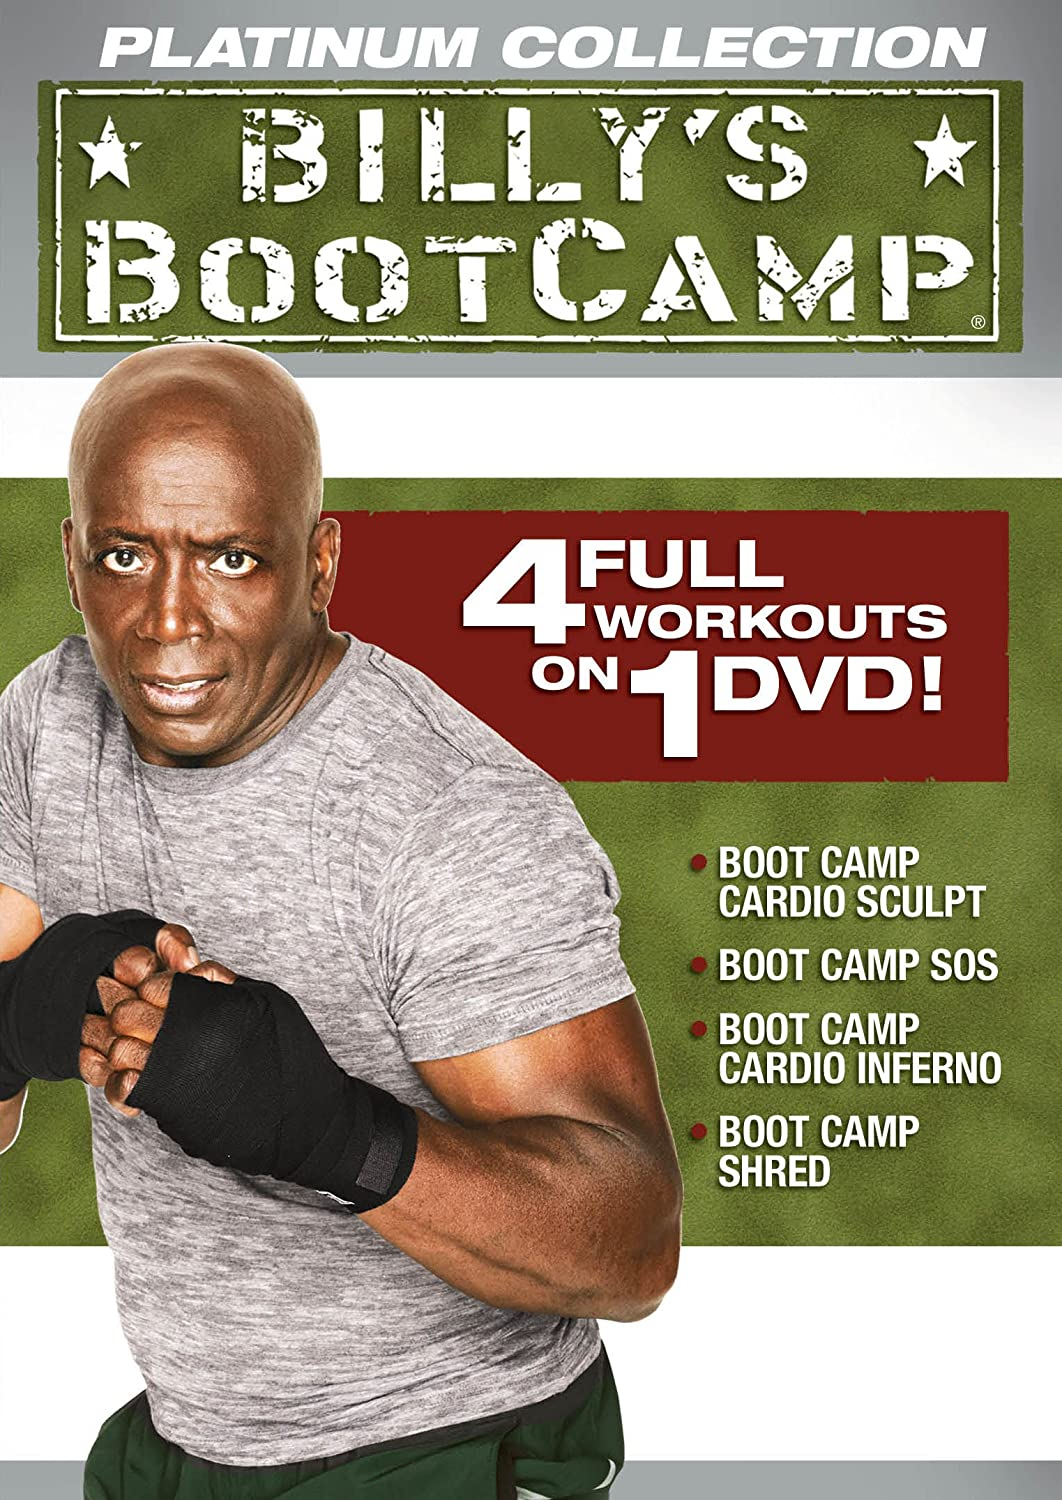 Platinum Collection Bootcamp Billy Blanks Starz / Anchor Bay 33973909 Fitness/Self-Help